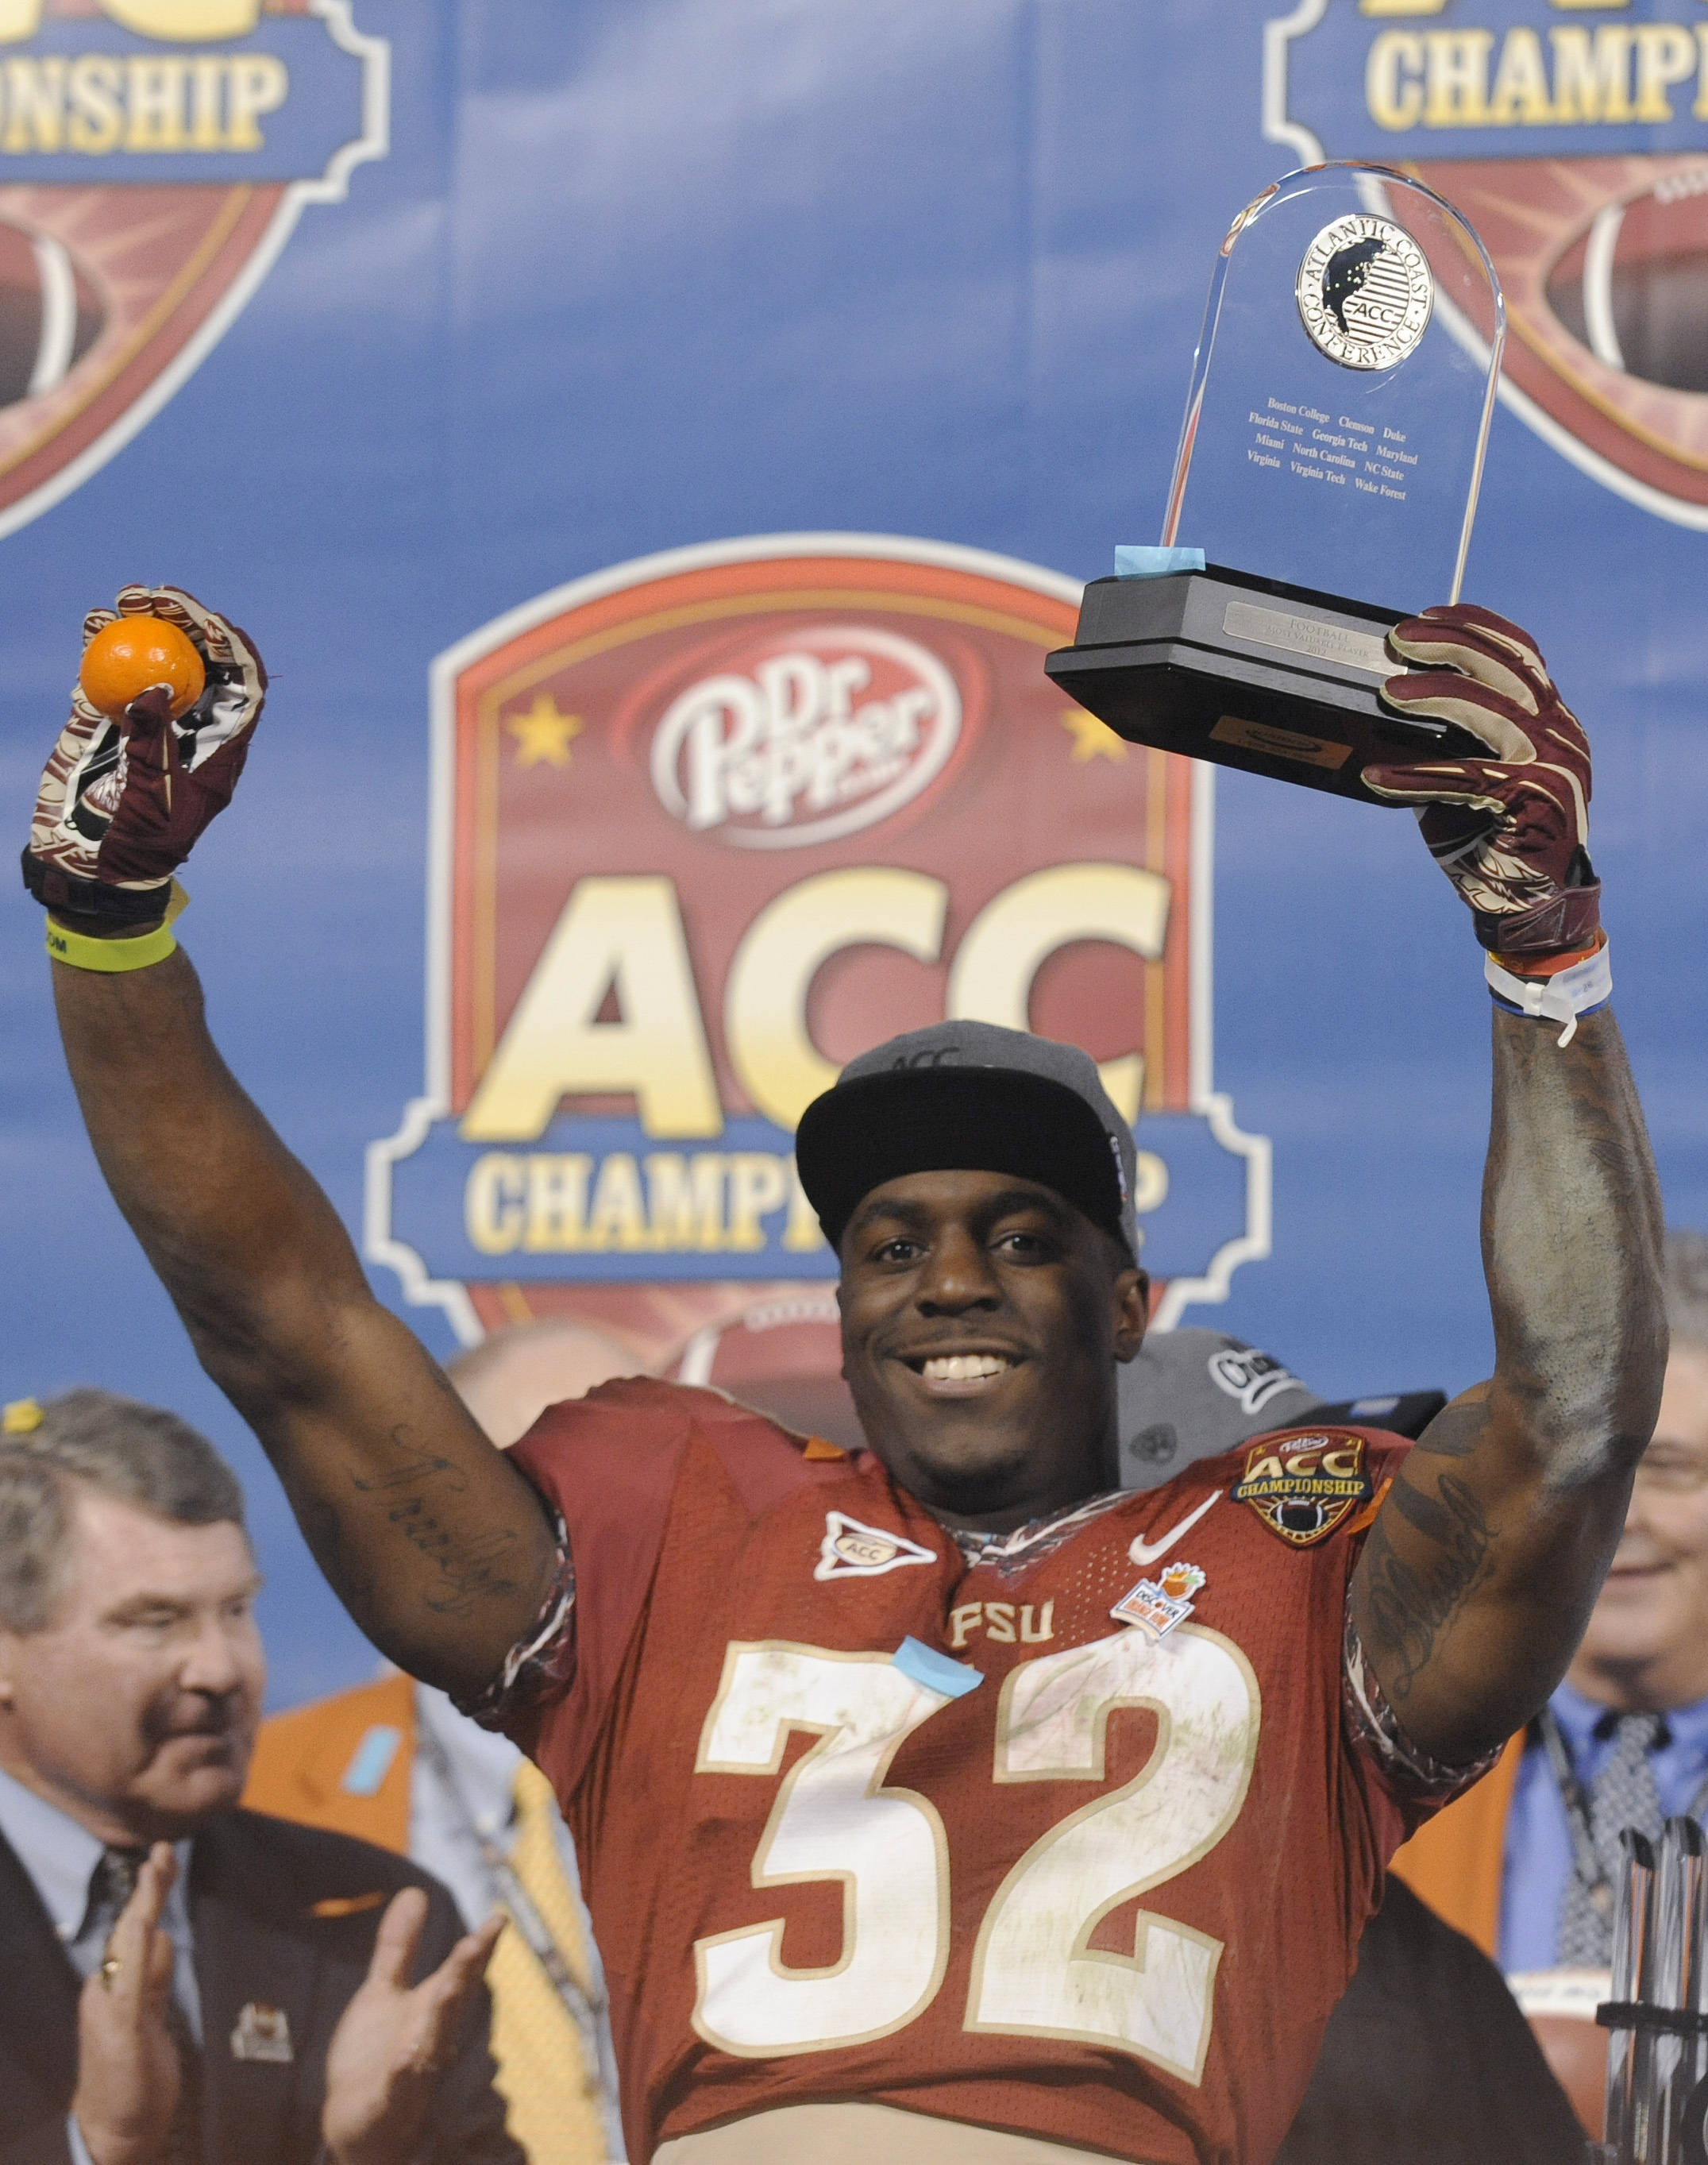 Florida State's James Wilder Jr. (32) celebrates the team's 21-15 win over Georgia Tech in the Atlantic Coast Conference championship NCAA college football game in Charlotte, N.C., Saturday, Dec. 1, 2012. Wilder was the game MVP. (AP Photo/Mike McCarn)